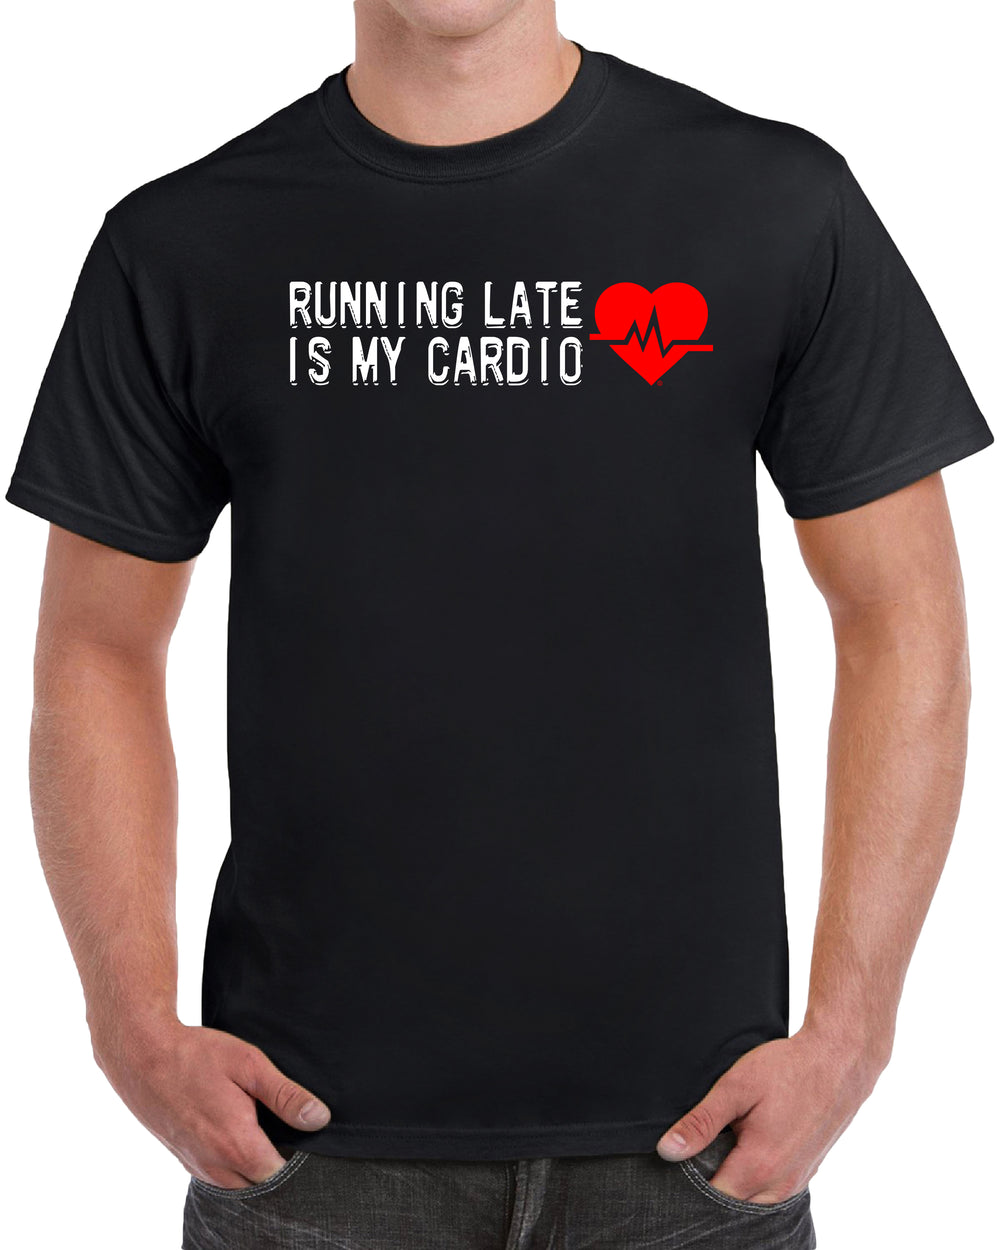 Running Late is My Cardio - Solid Print